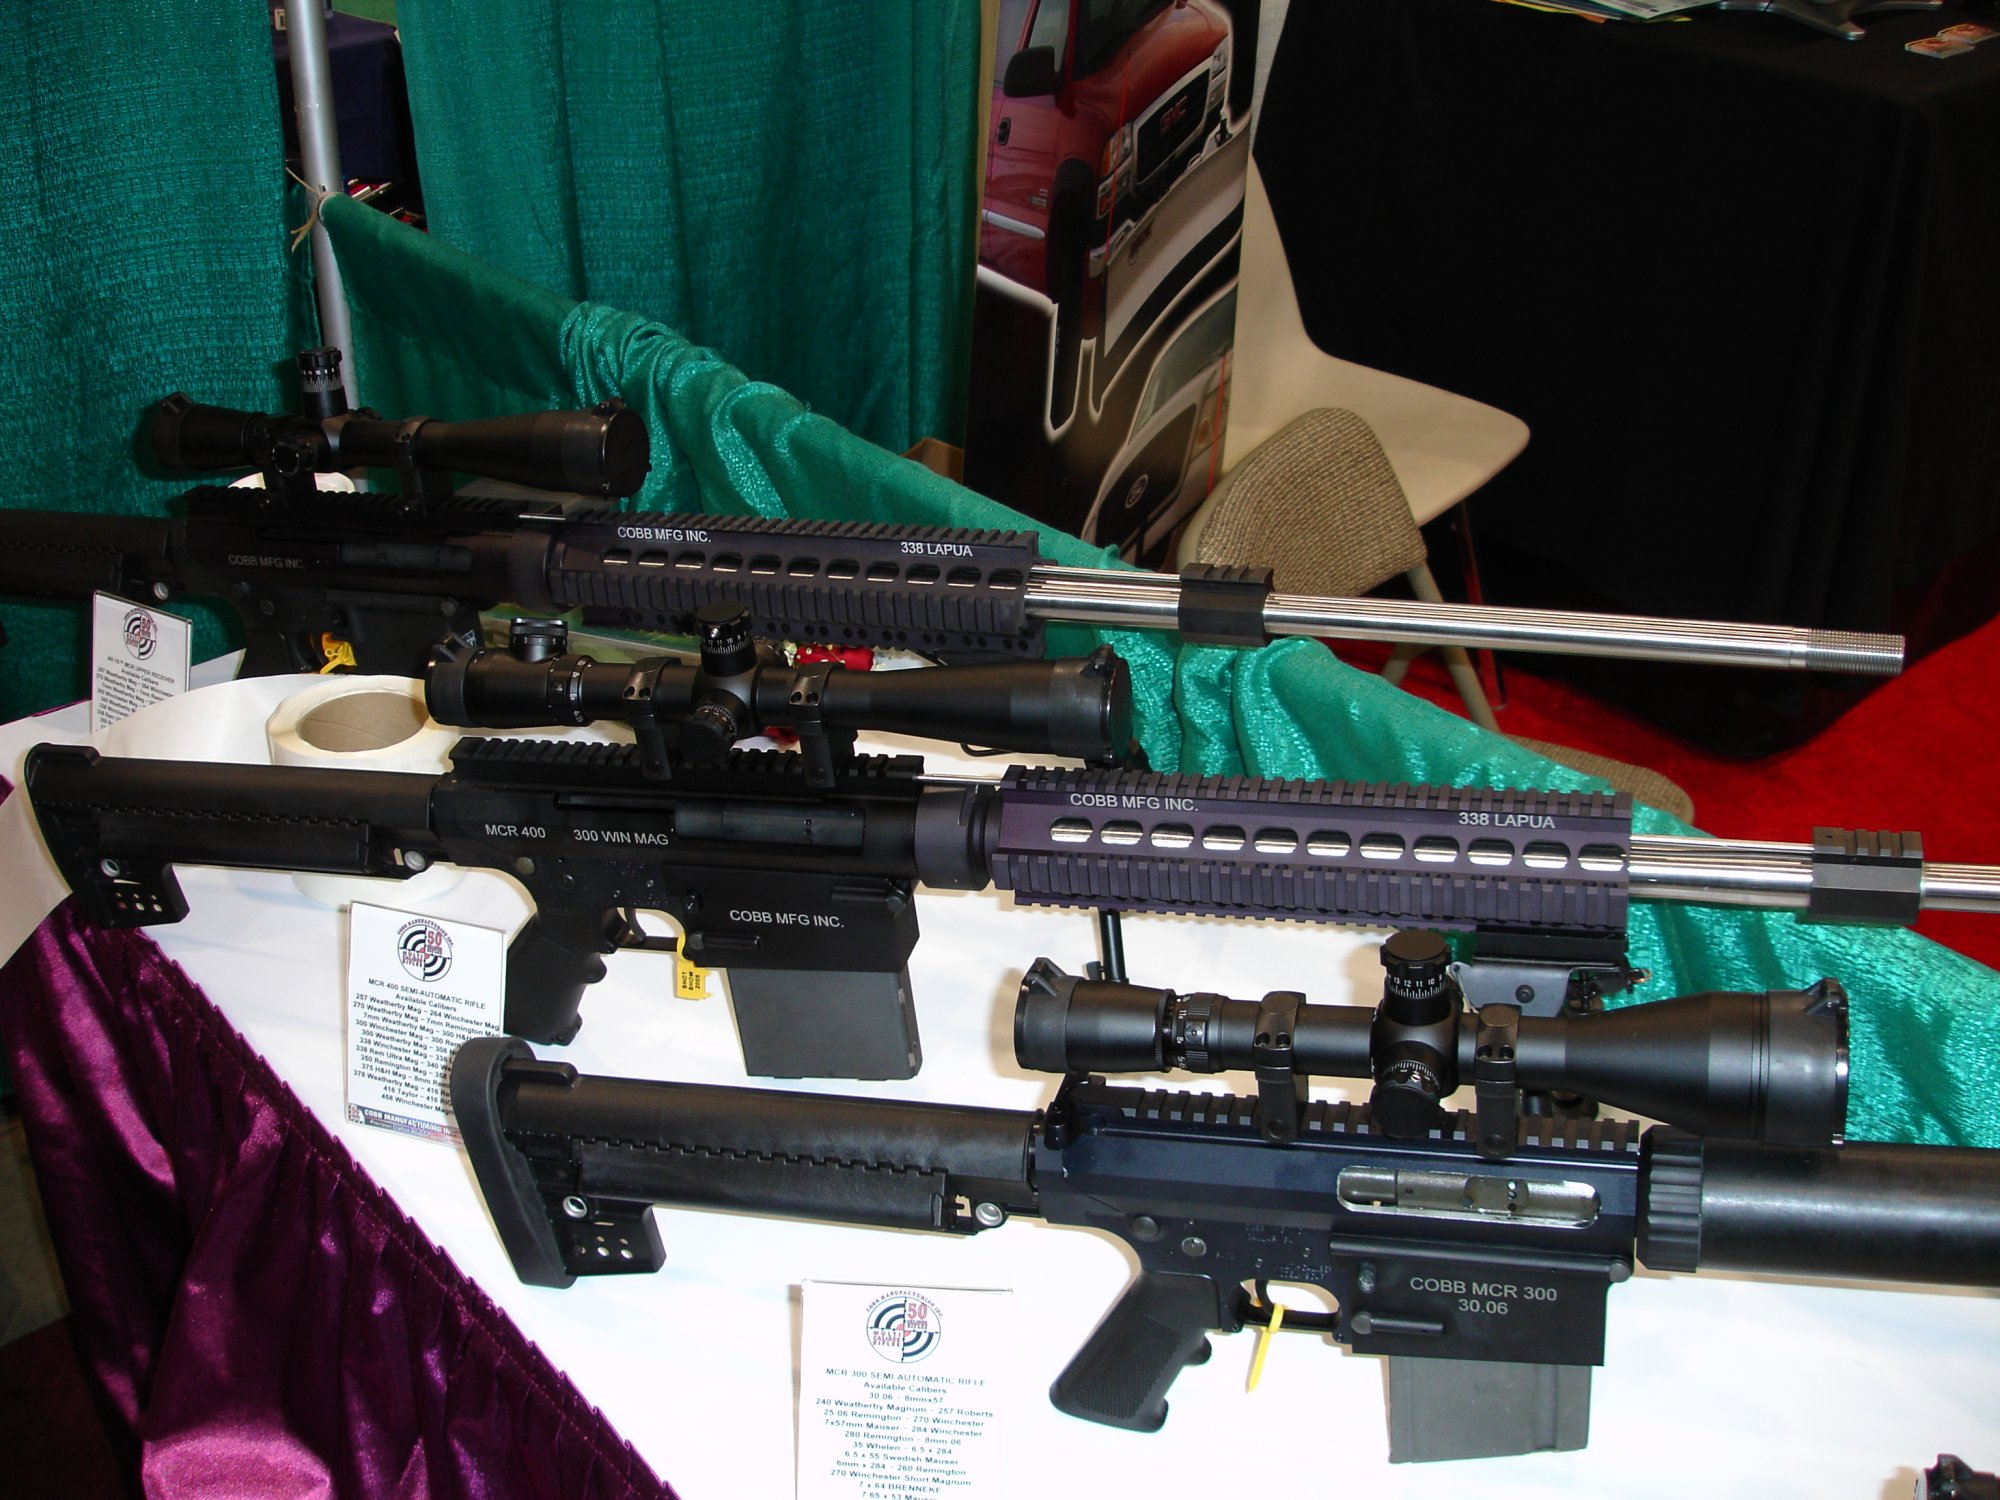 CobbMCR SCARprototype.30.06and.338Lapua 1 <!  :en  >Cobb SCAR Candidate/MCR Prototype Weapons at SHOT Show 2005<!  :  >